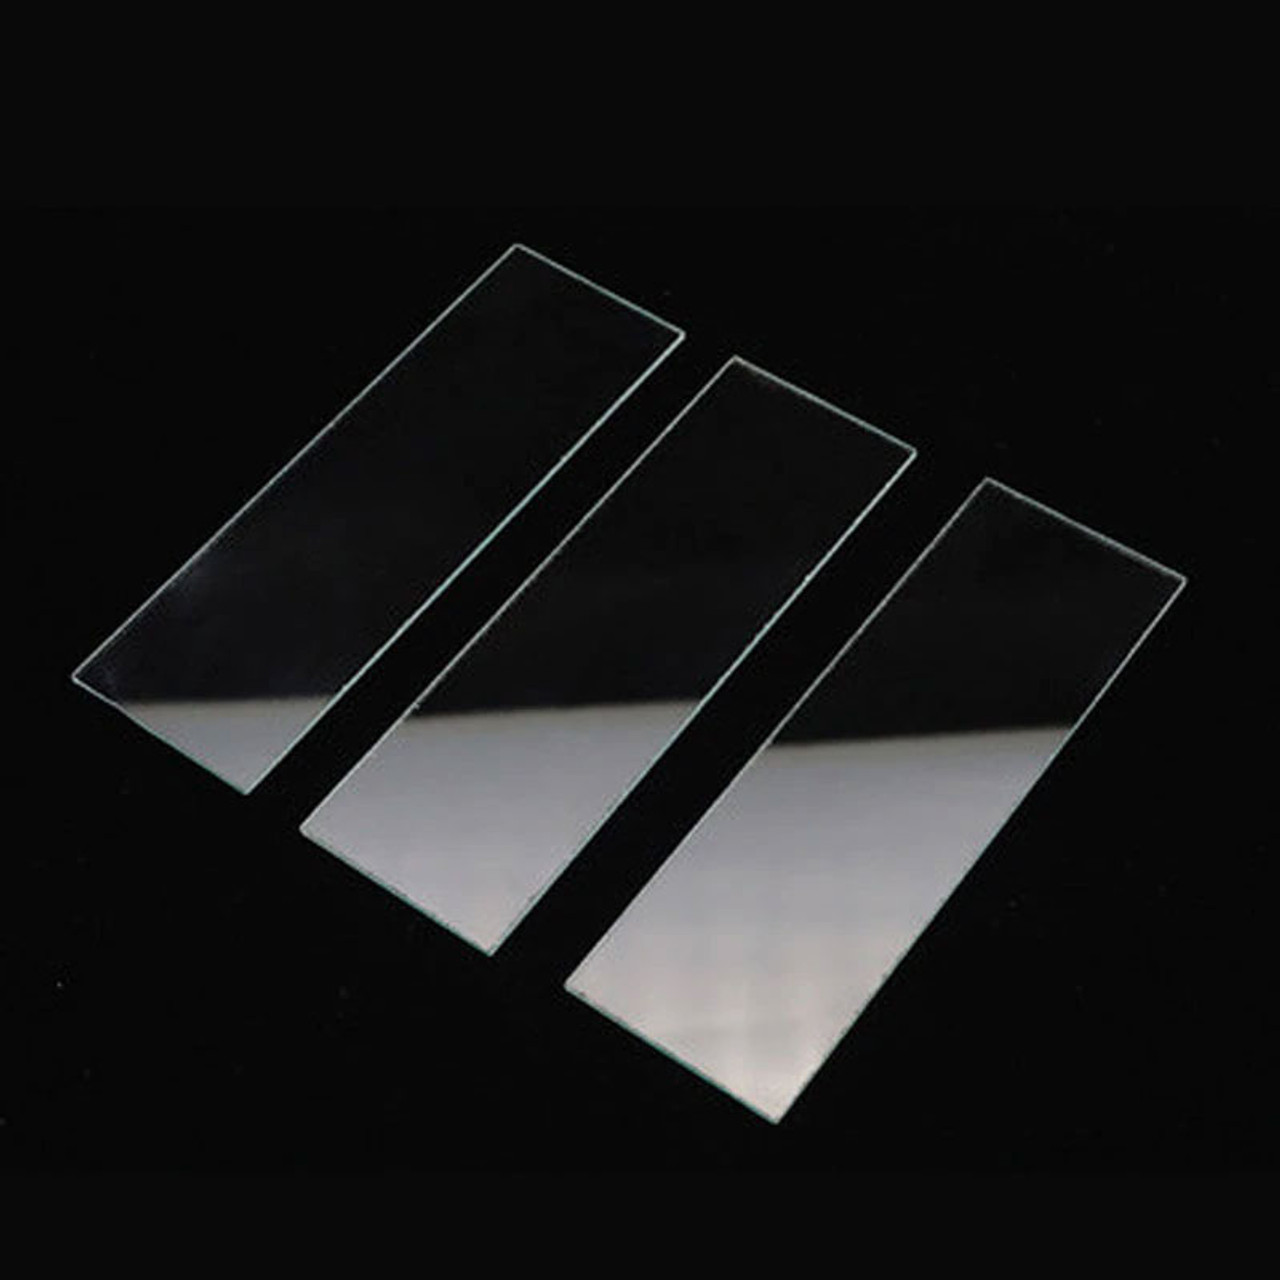 Glass Microscope Slides and Slide Covers (100 pcs each)